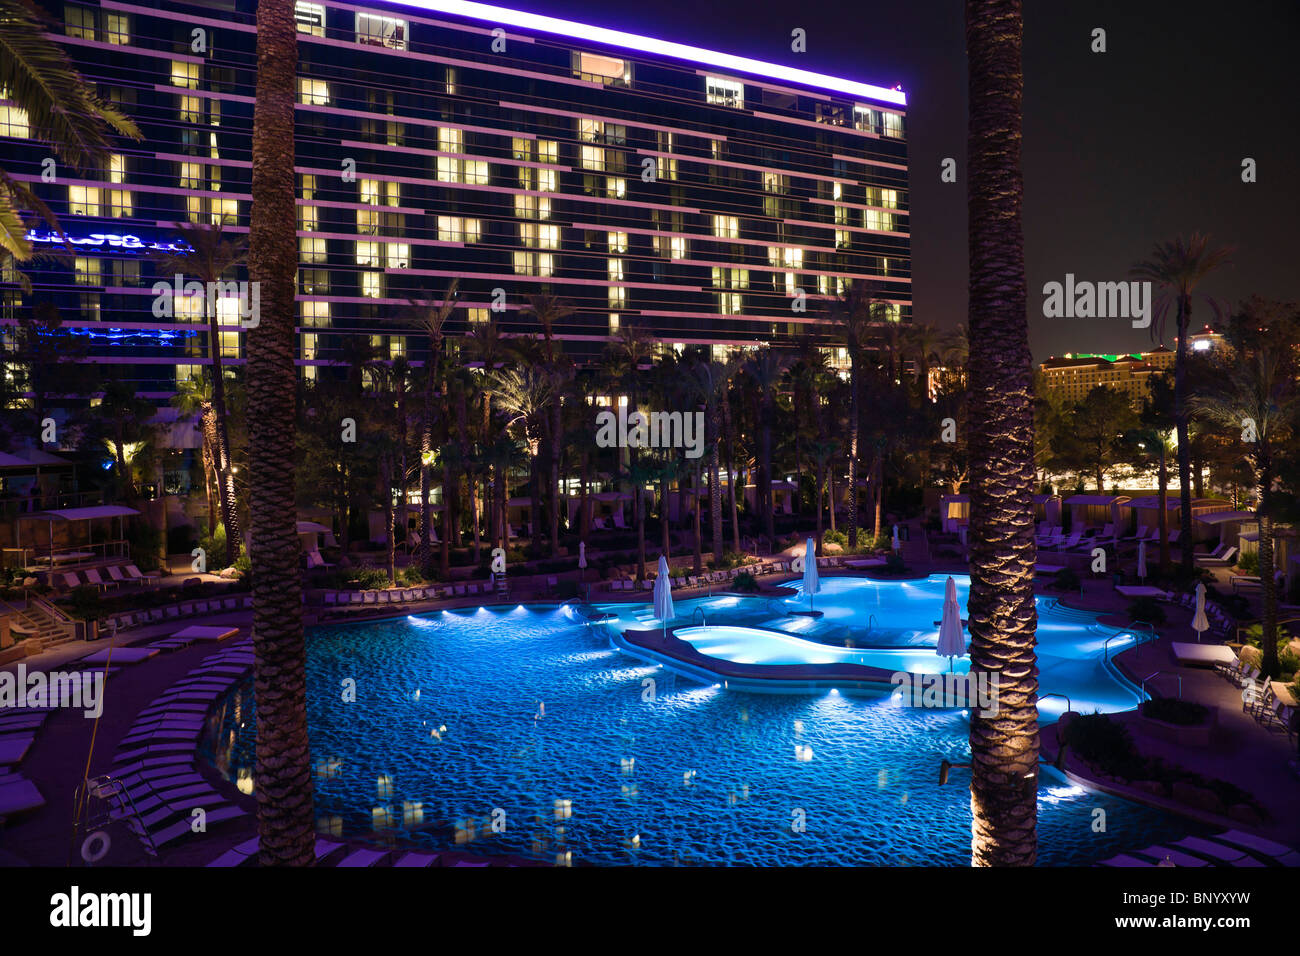 The Rock Hotel Stockfotos & The Rock Hotel Bilder - Alamy